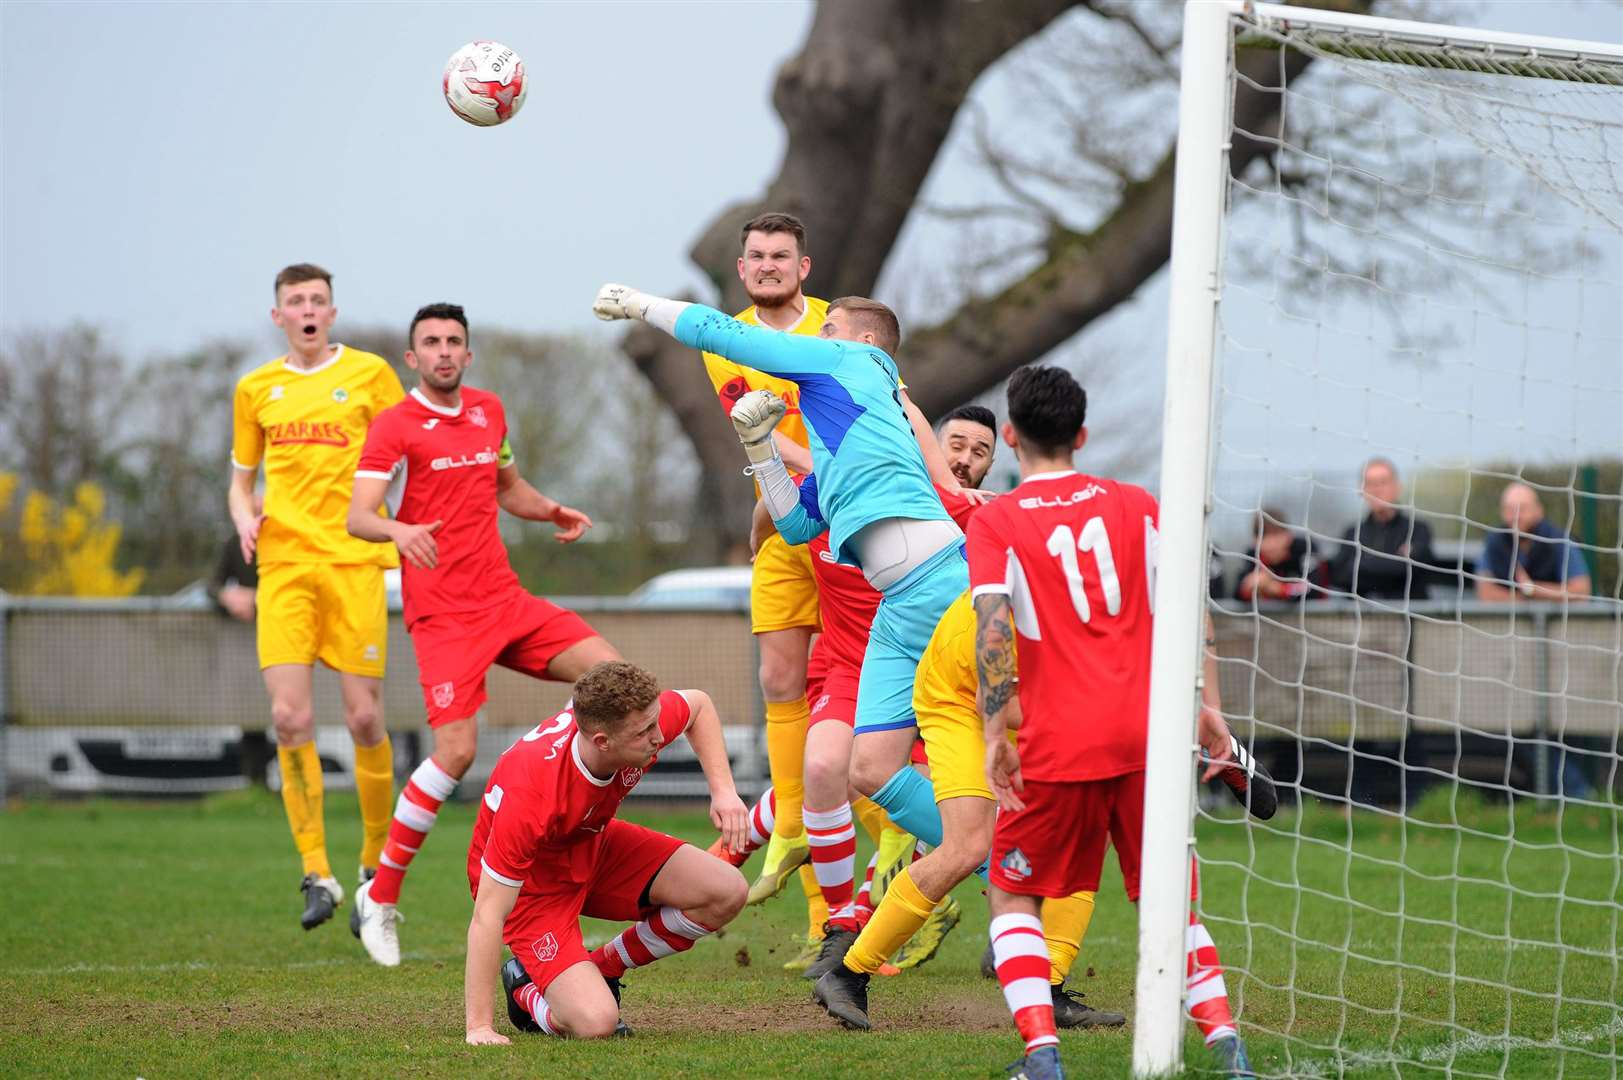 FOOTBALL - Walsham Le Willows v Ely City..Pictured: Harry Roberts (E) clears the ball....PICTURE: Mecha Morton.... (8157371)